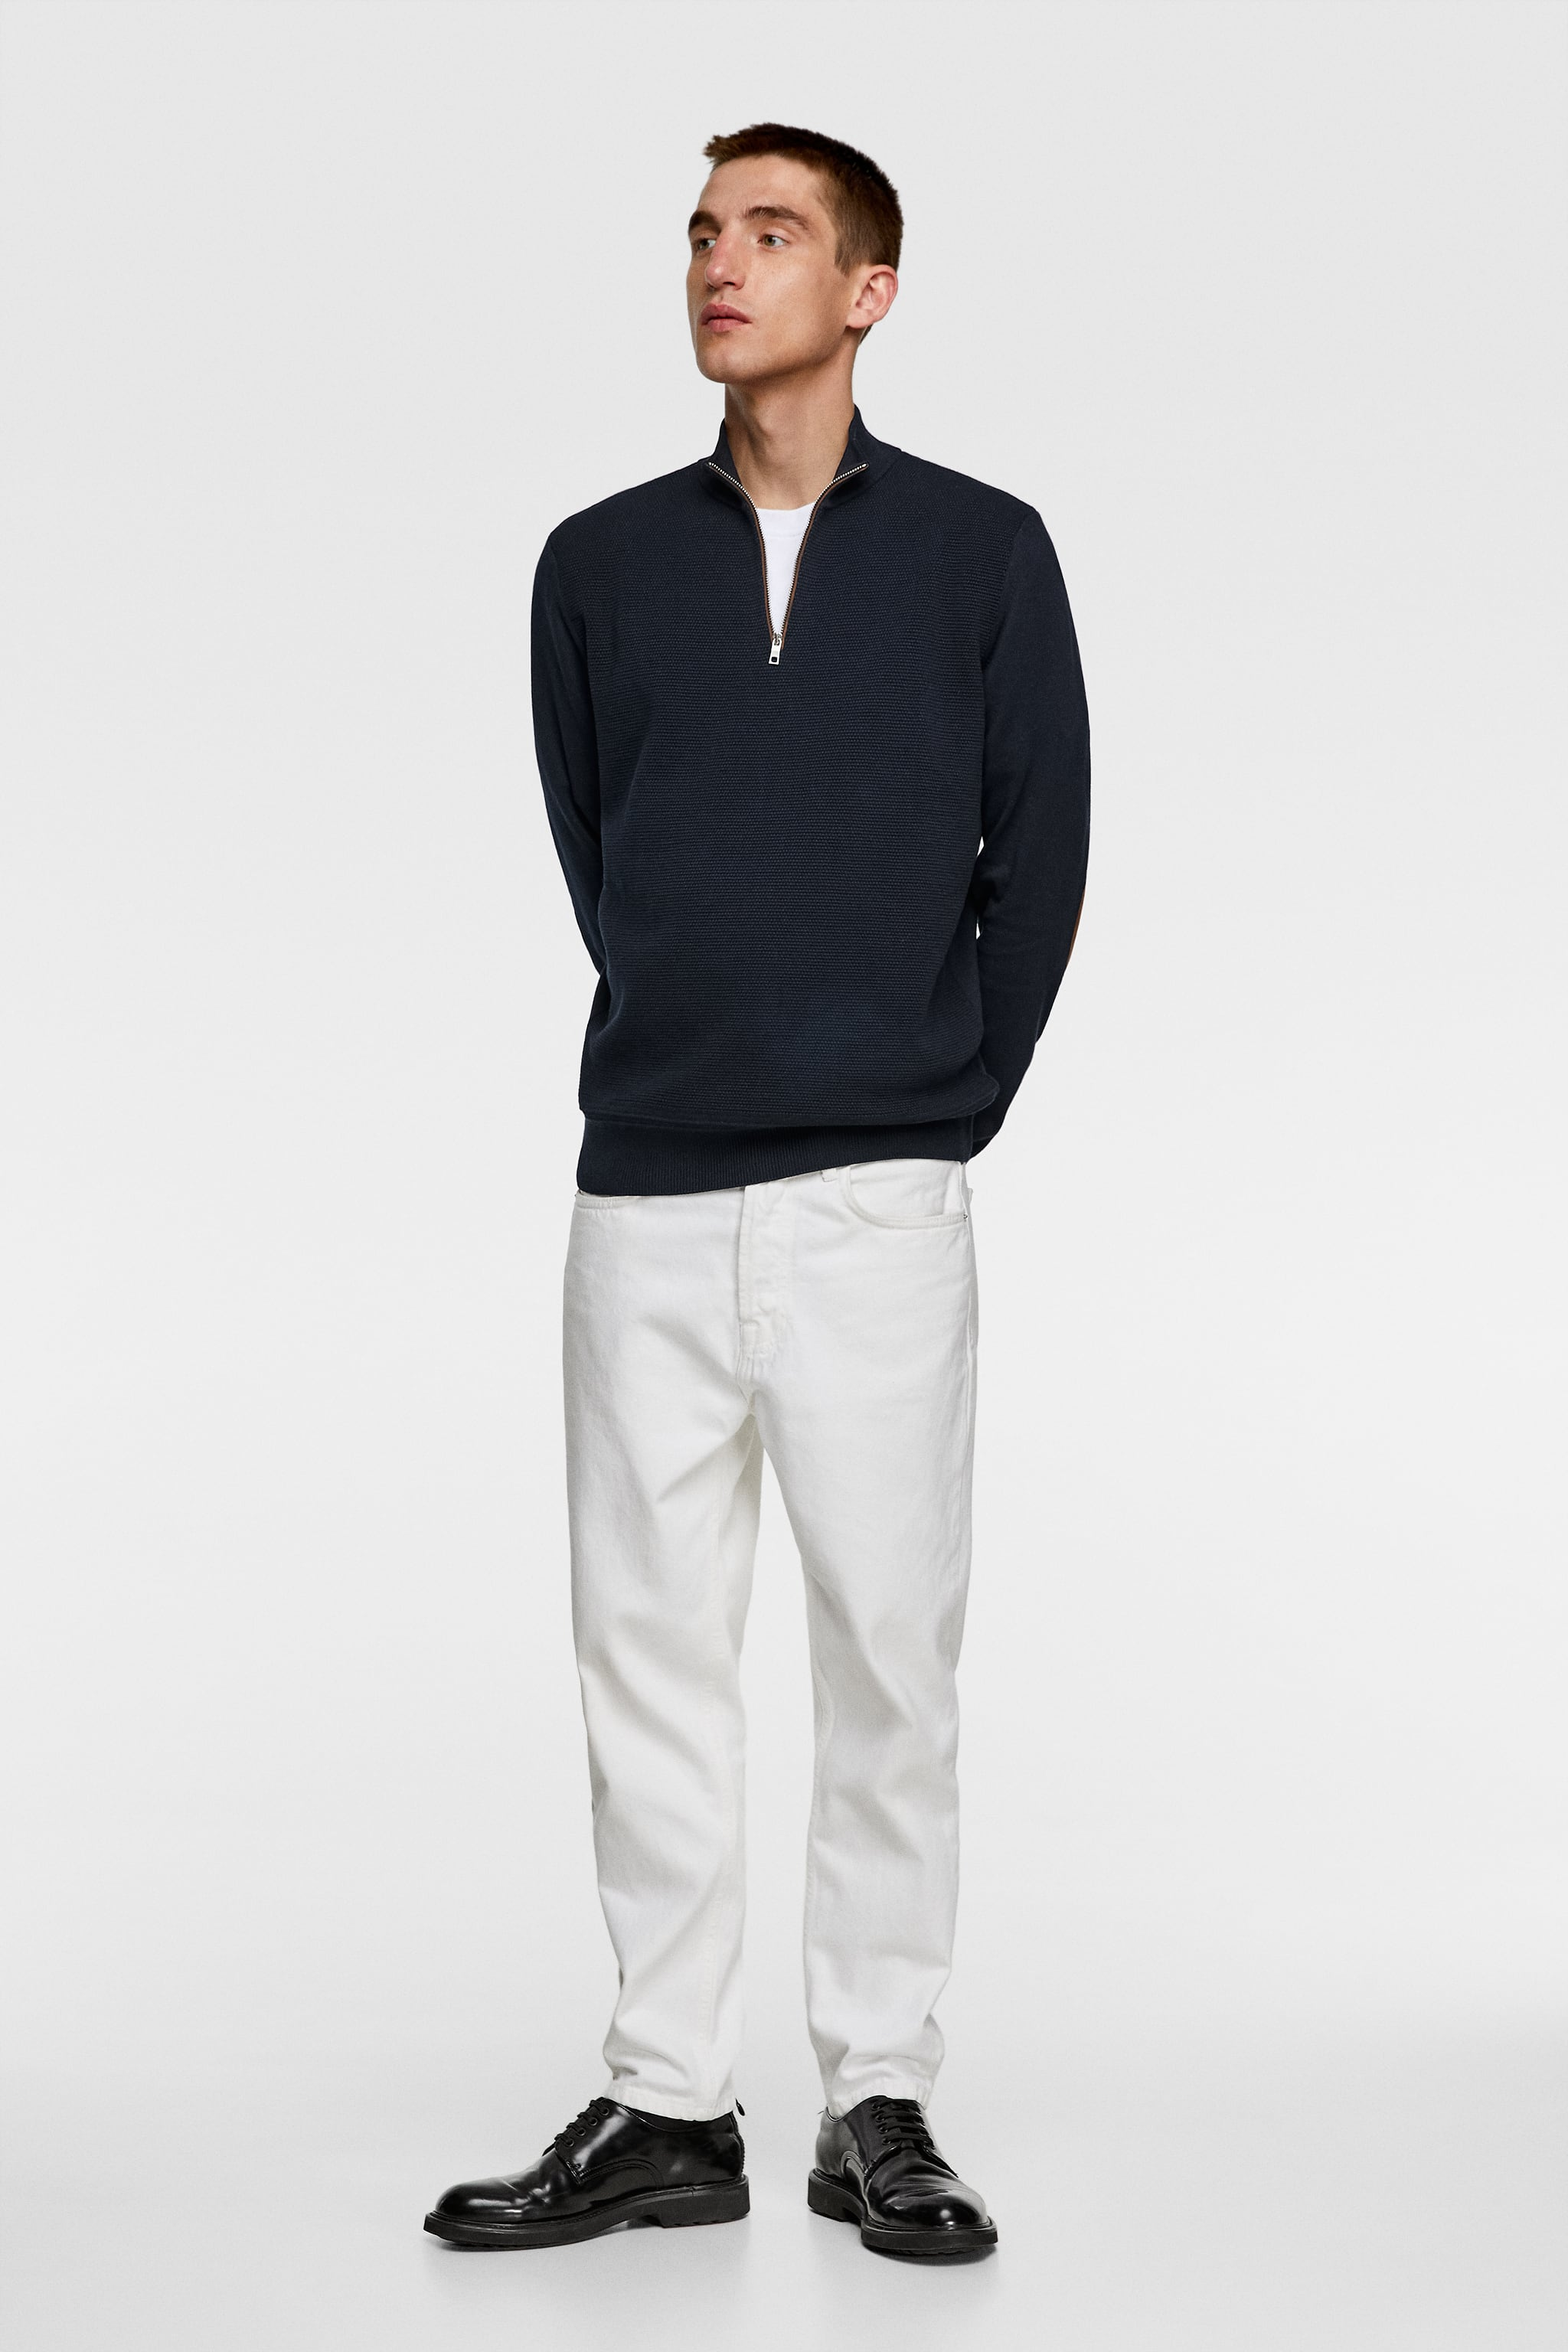 Zara MOCK NECK SWEATER WITH ELBOW PATCHES